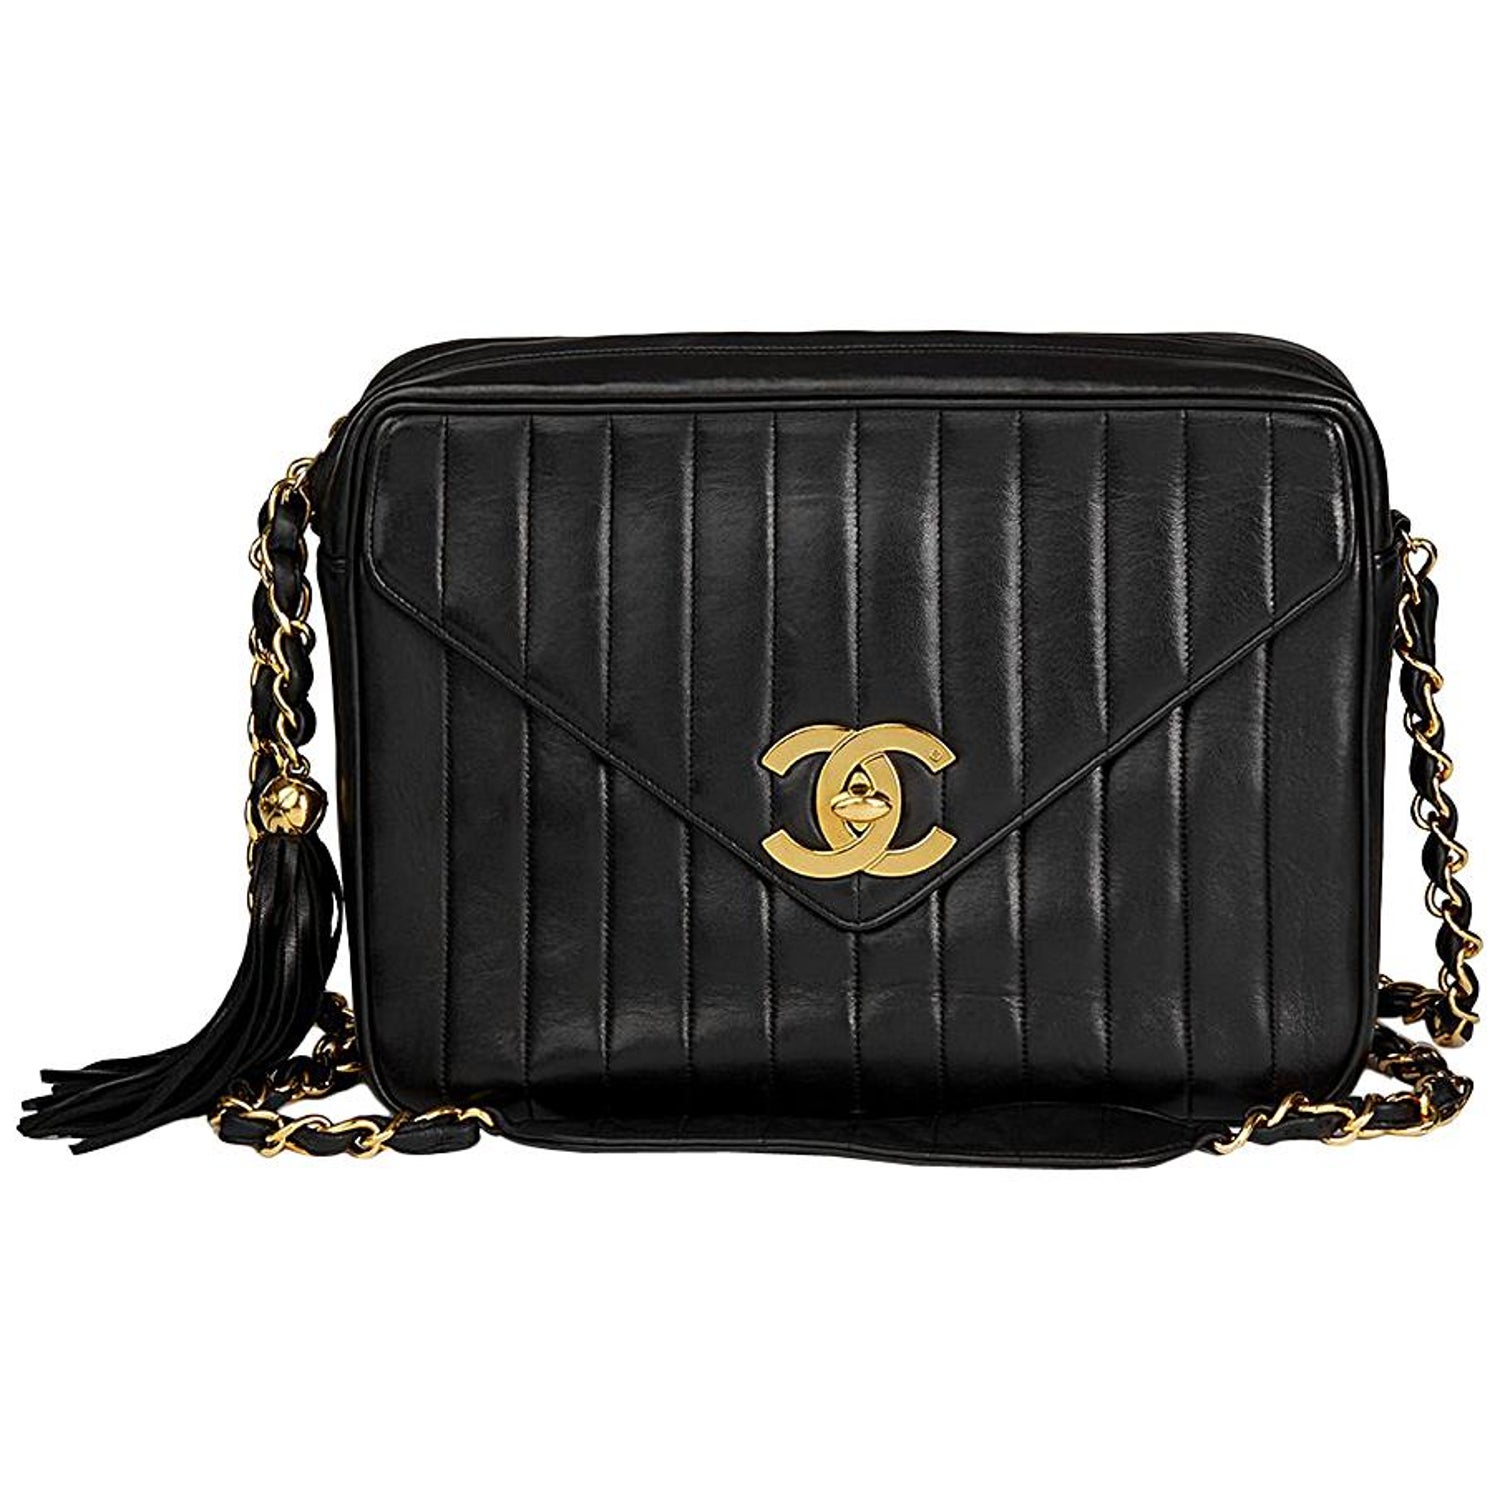 961d5f2dfe4b99 1996 Chanel Black Vertical Quilted Lambskin Vintage Jumbo XL Fringe Camera  Bag at 1stdibs